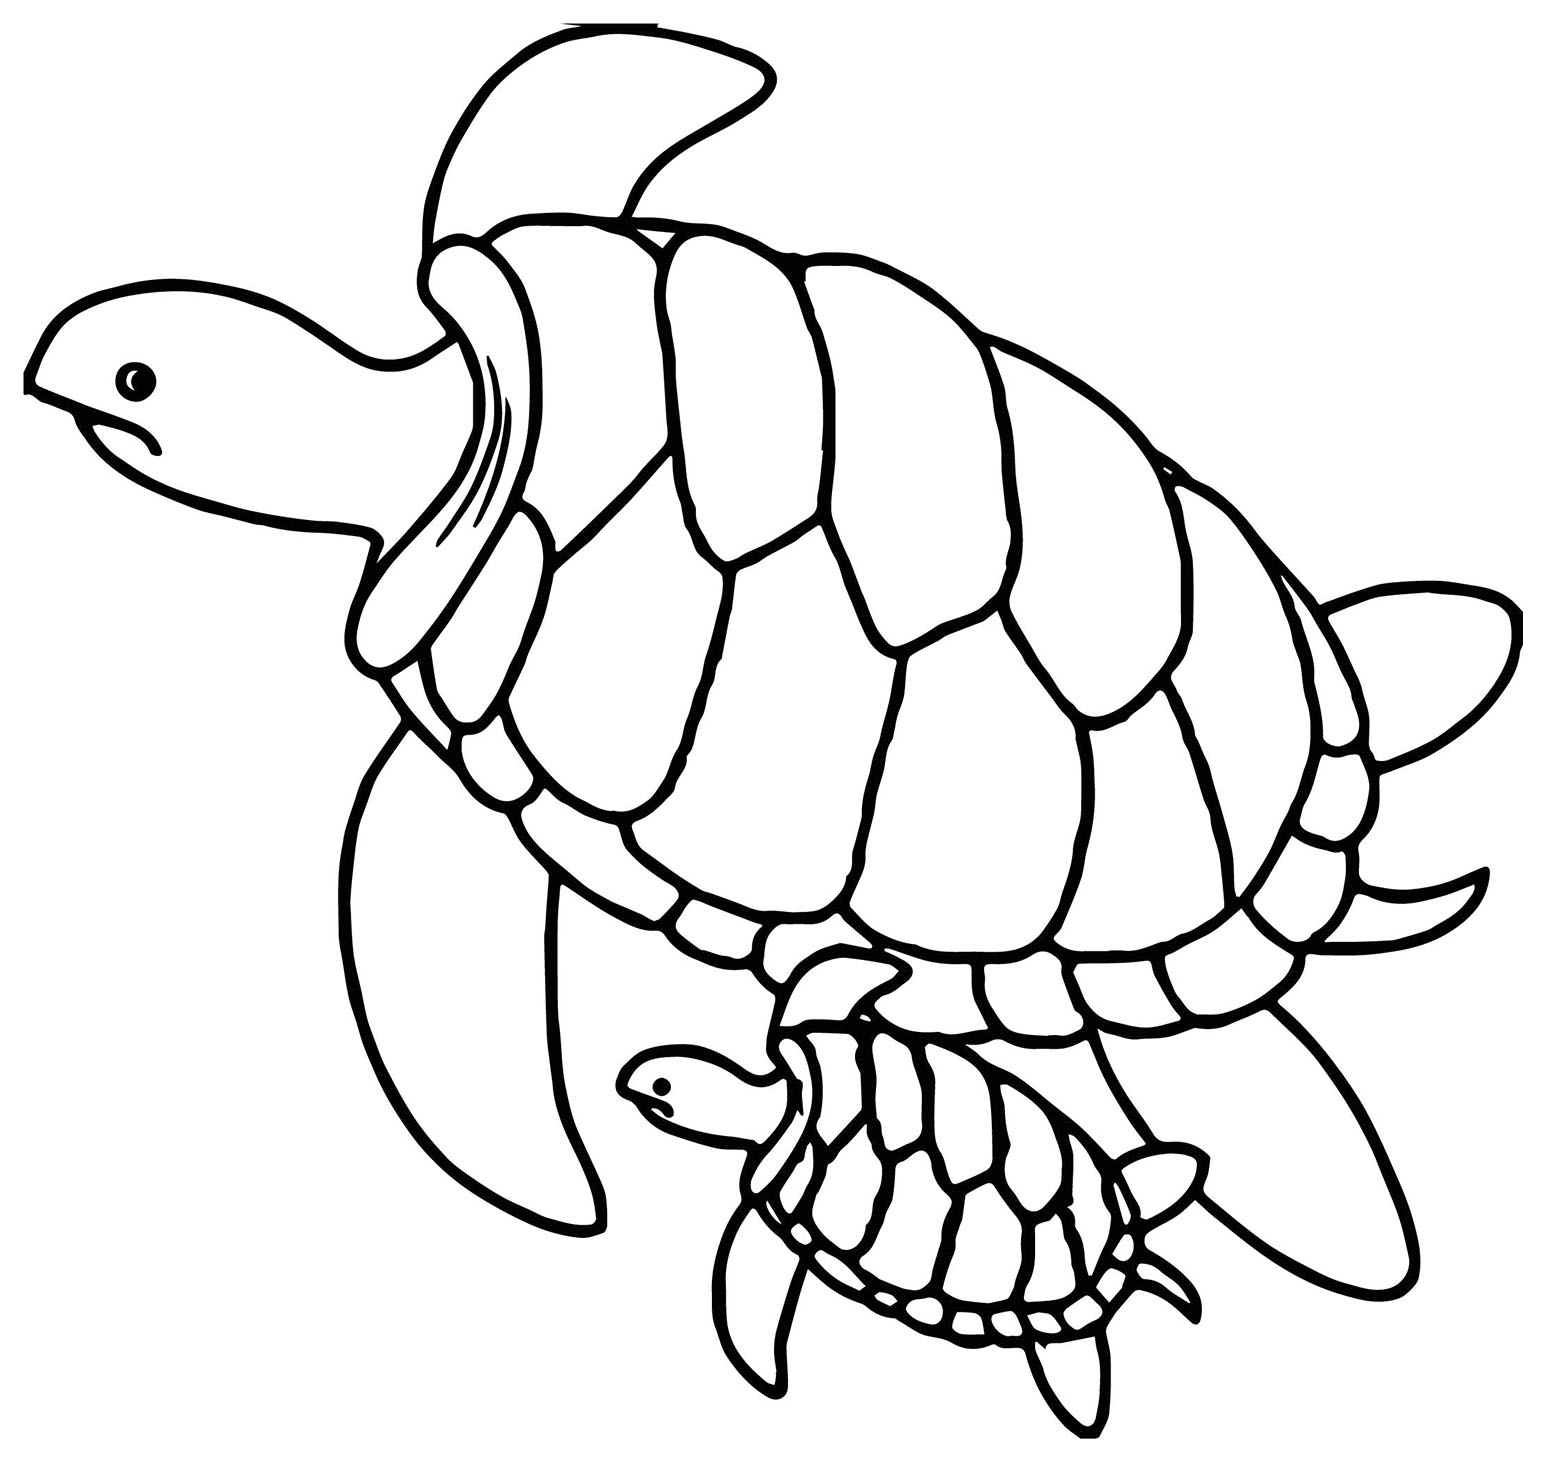 Turtles To Print Turtles Kids Coloring Pages